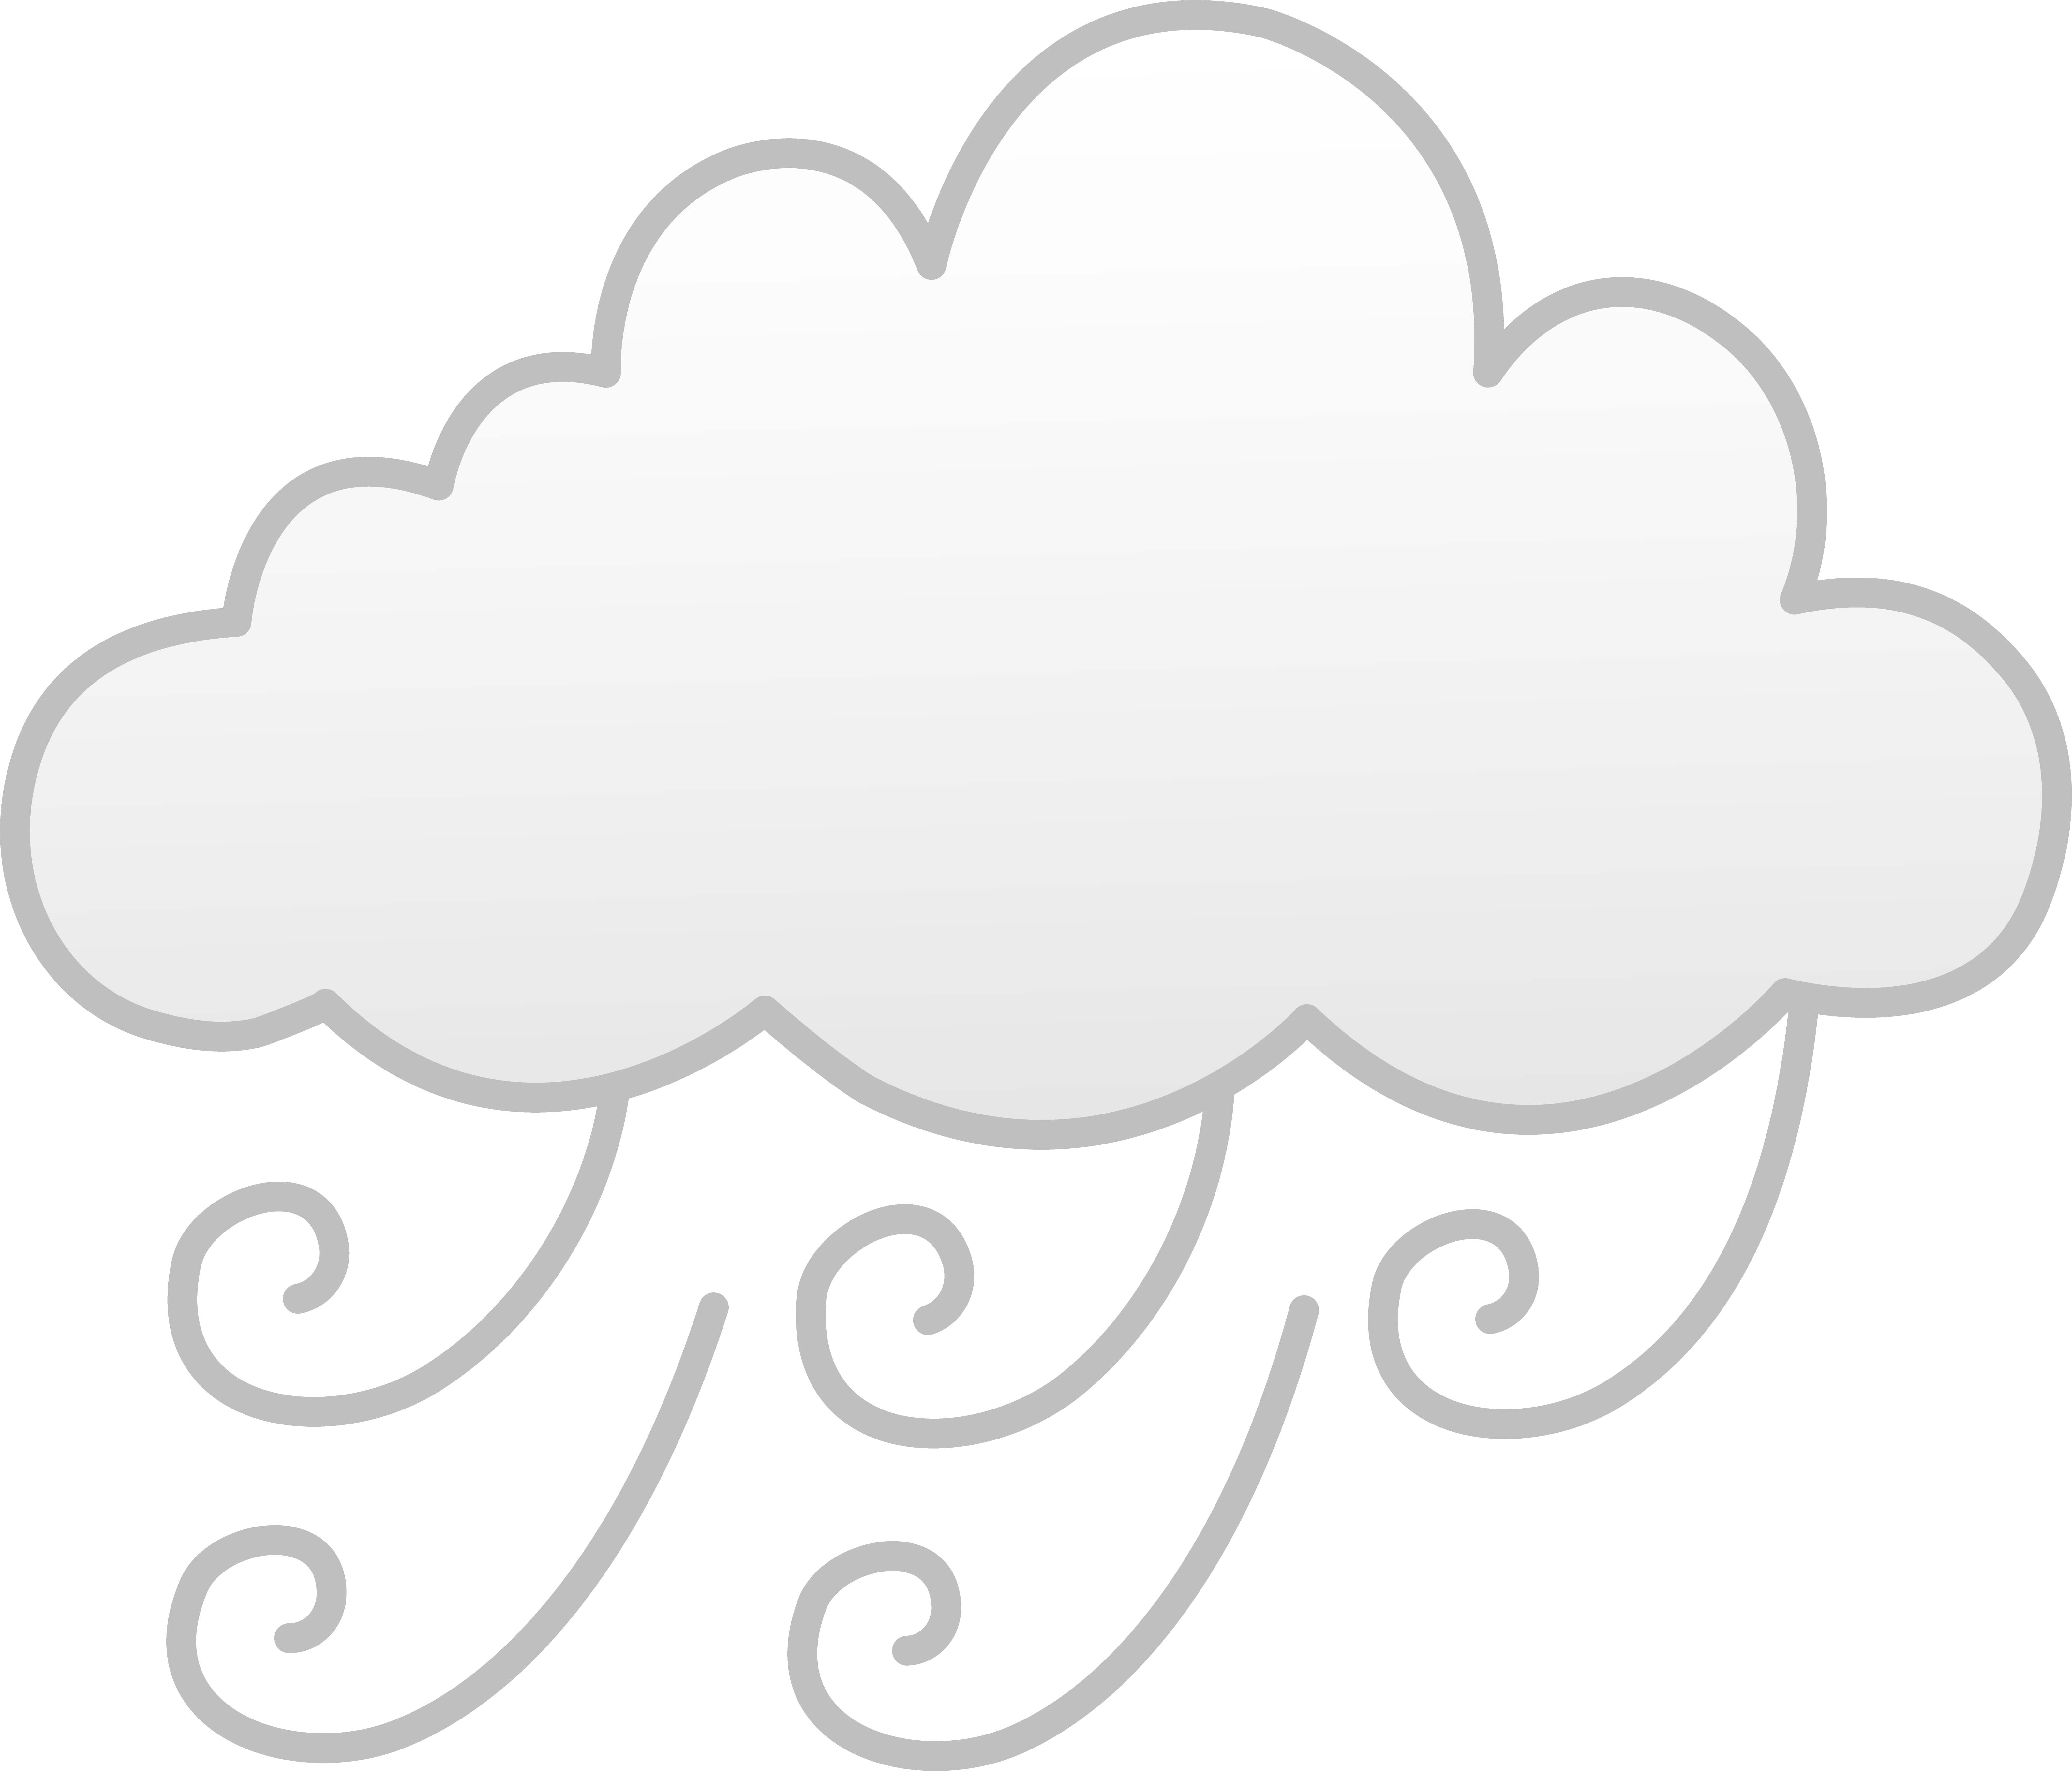 Breeze clipart foggy weather #1